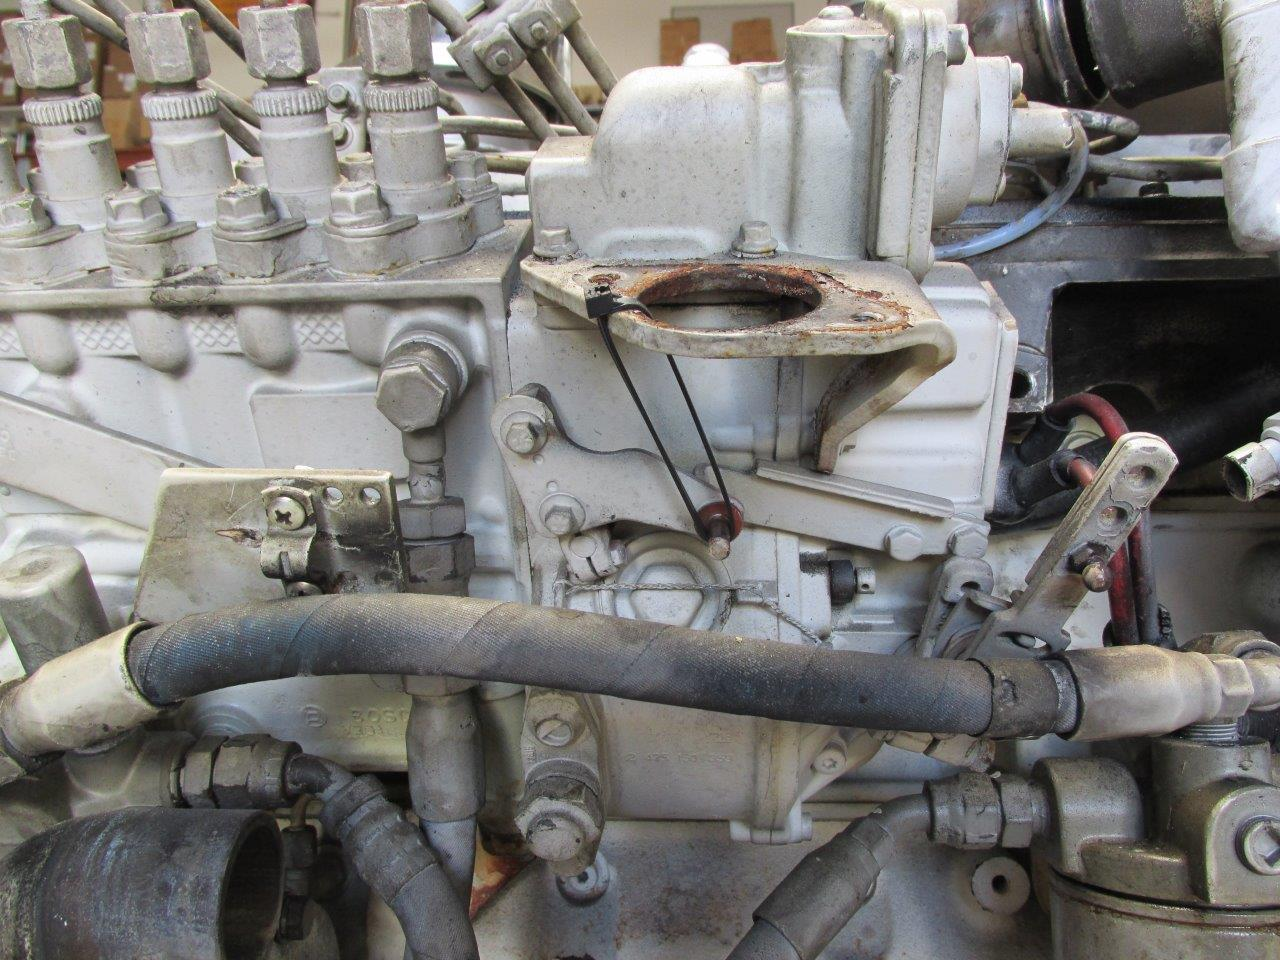 Bosch-Fuel-lever-tied-up-for-testing V Evinrude Outboard Wiring Diagram on